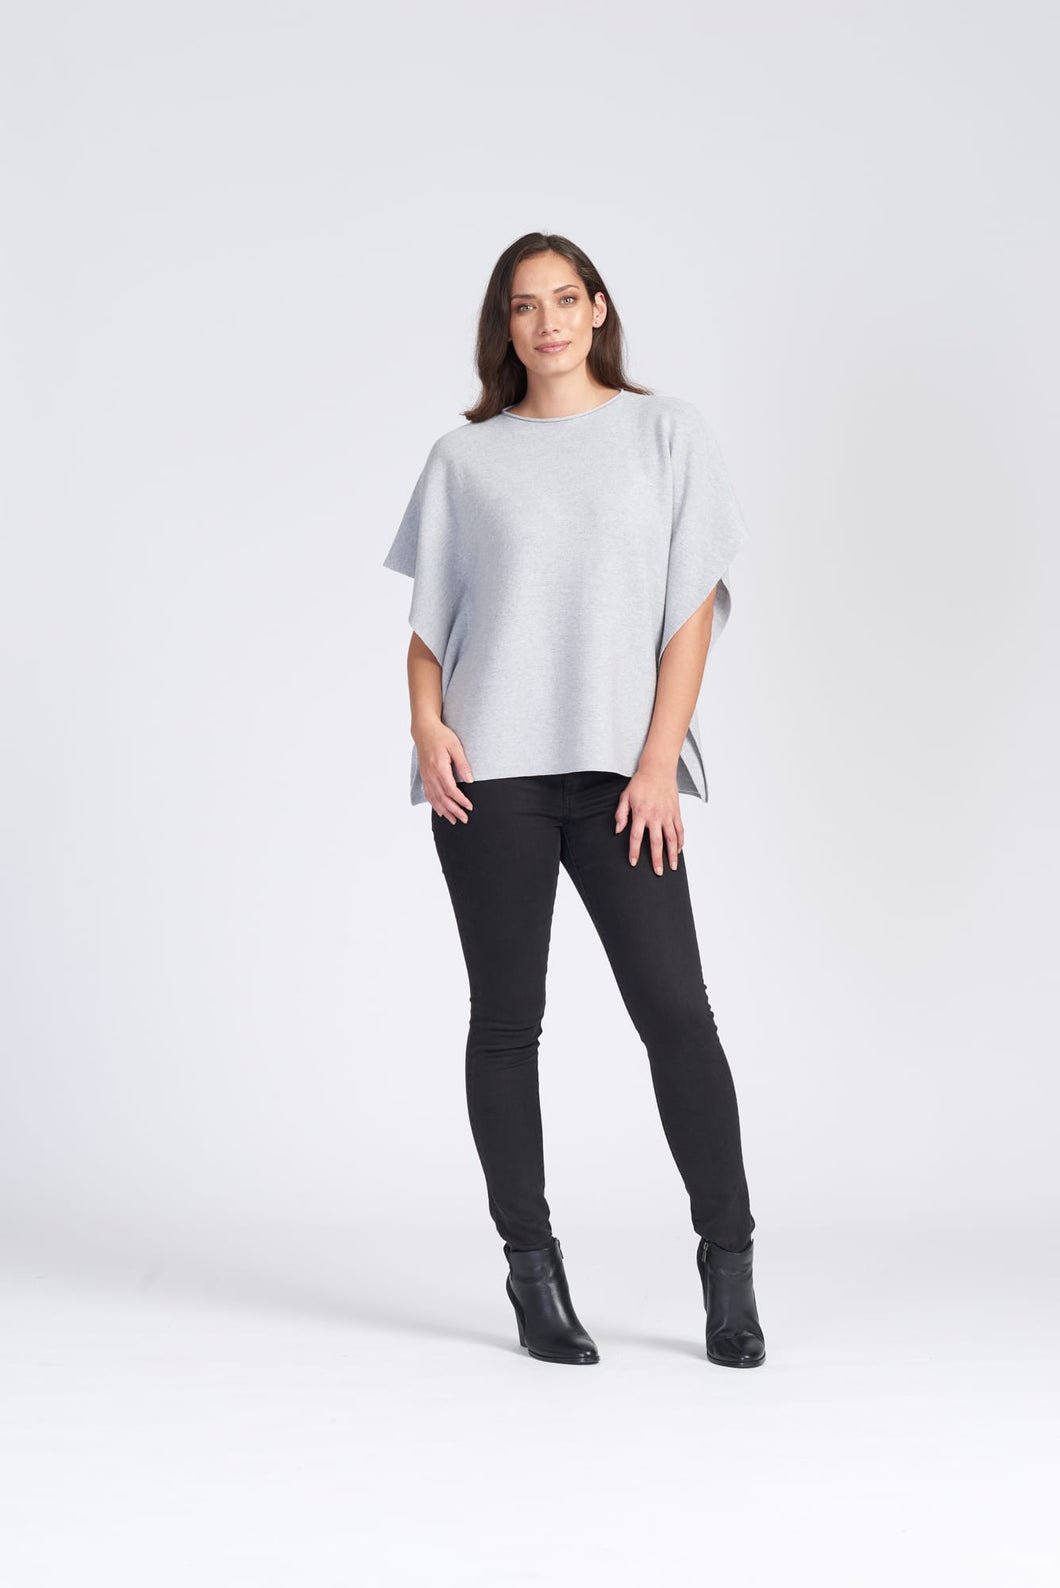 Merino Wool Loose Fit Garter Stitch Top - Royal Merino